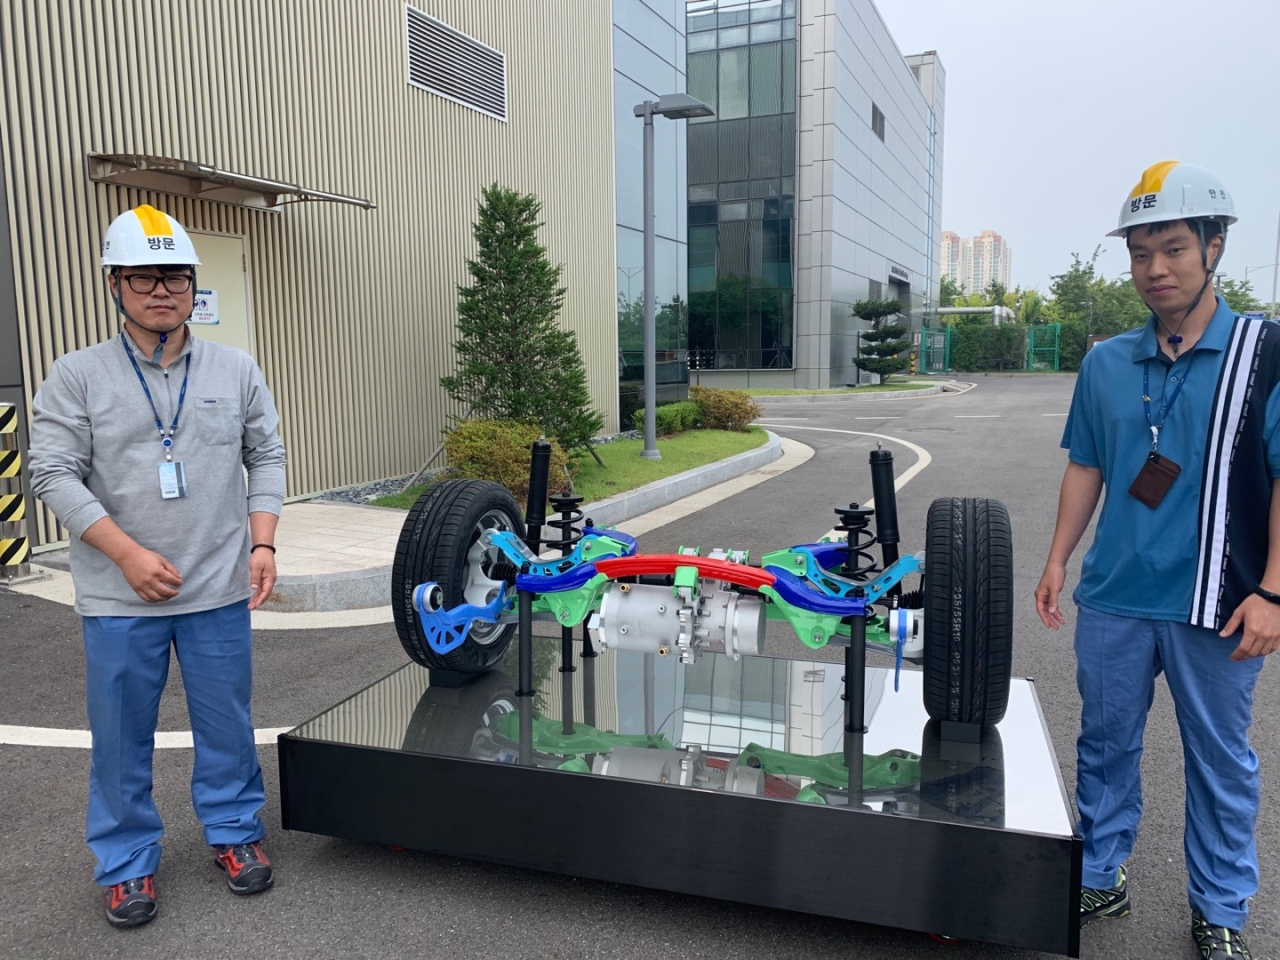 Lee Hong-woo (left), principal researcher at department materials forming research group of Posco Global R&D center, poses with suspension parts prototype his team developed in use of giga steel. (Cho Chung-un/The Korea Herald)